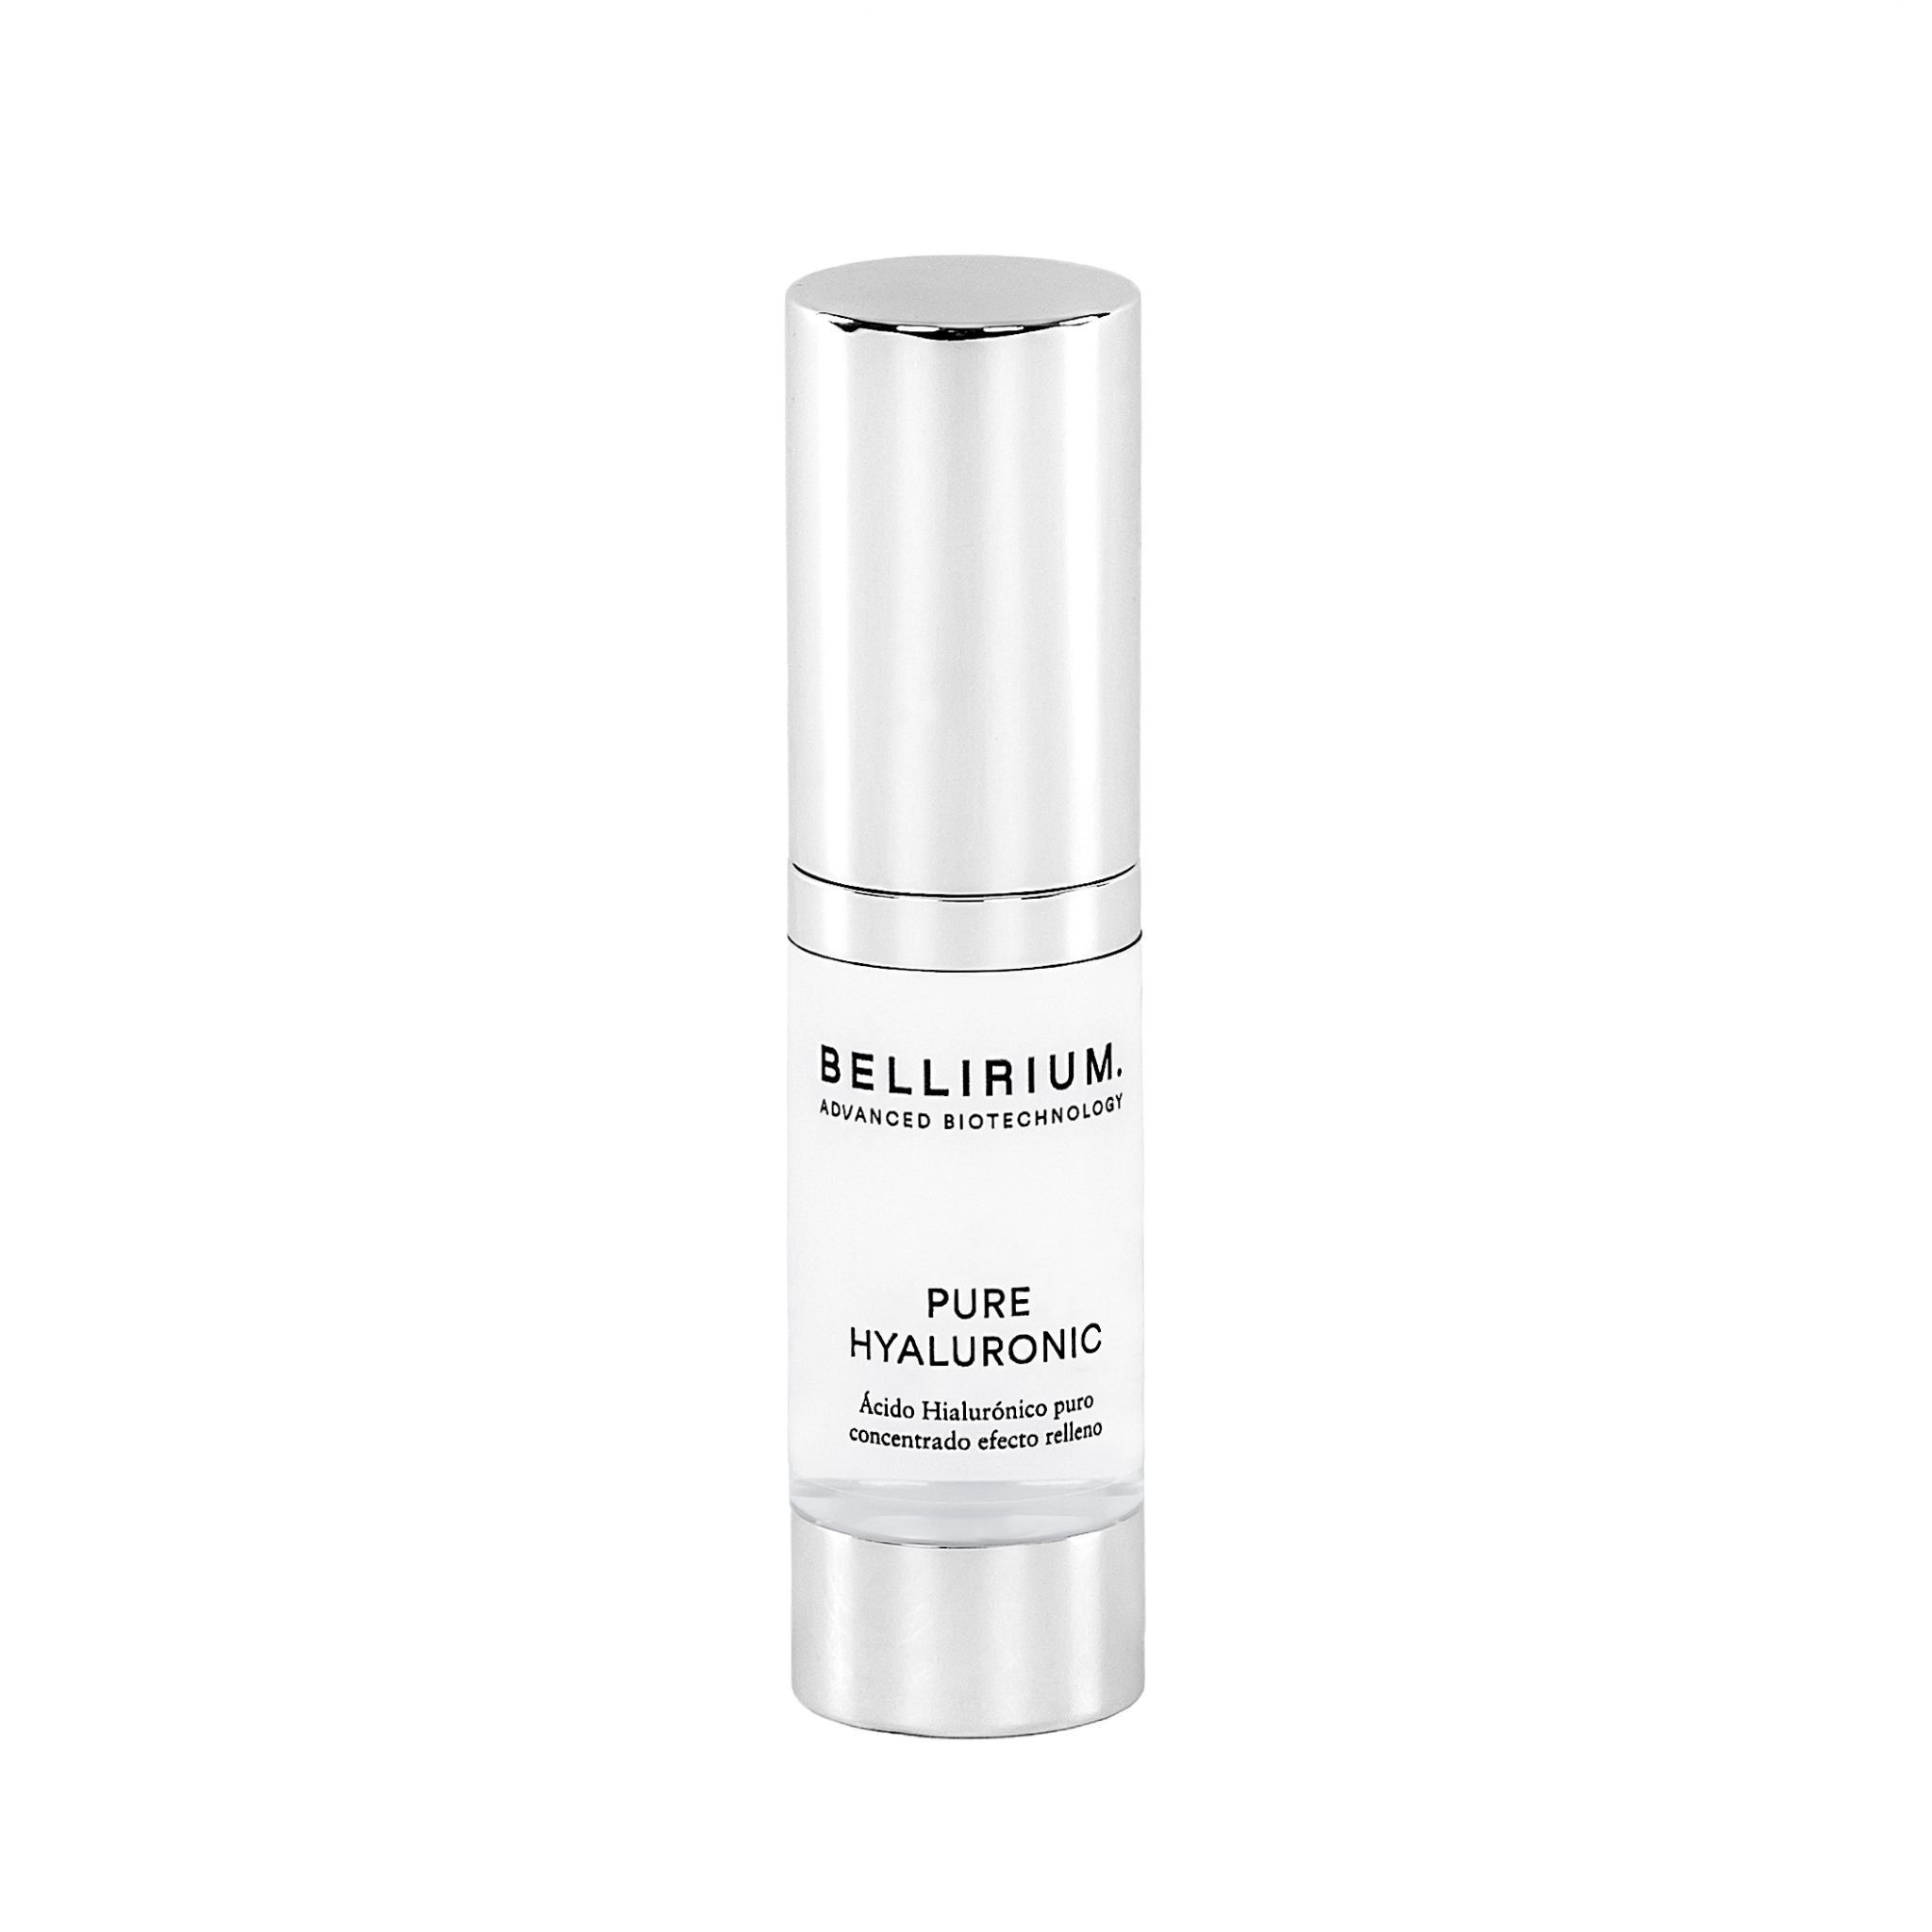 BELLIRIUM-PRODUCTO-PURE-HYALURONIC-0102